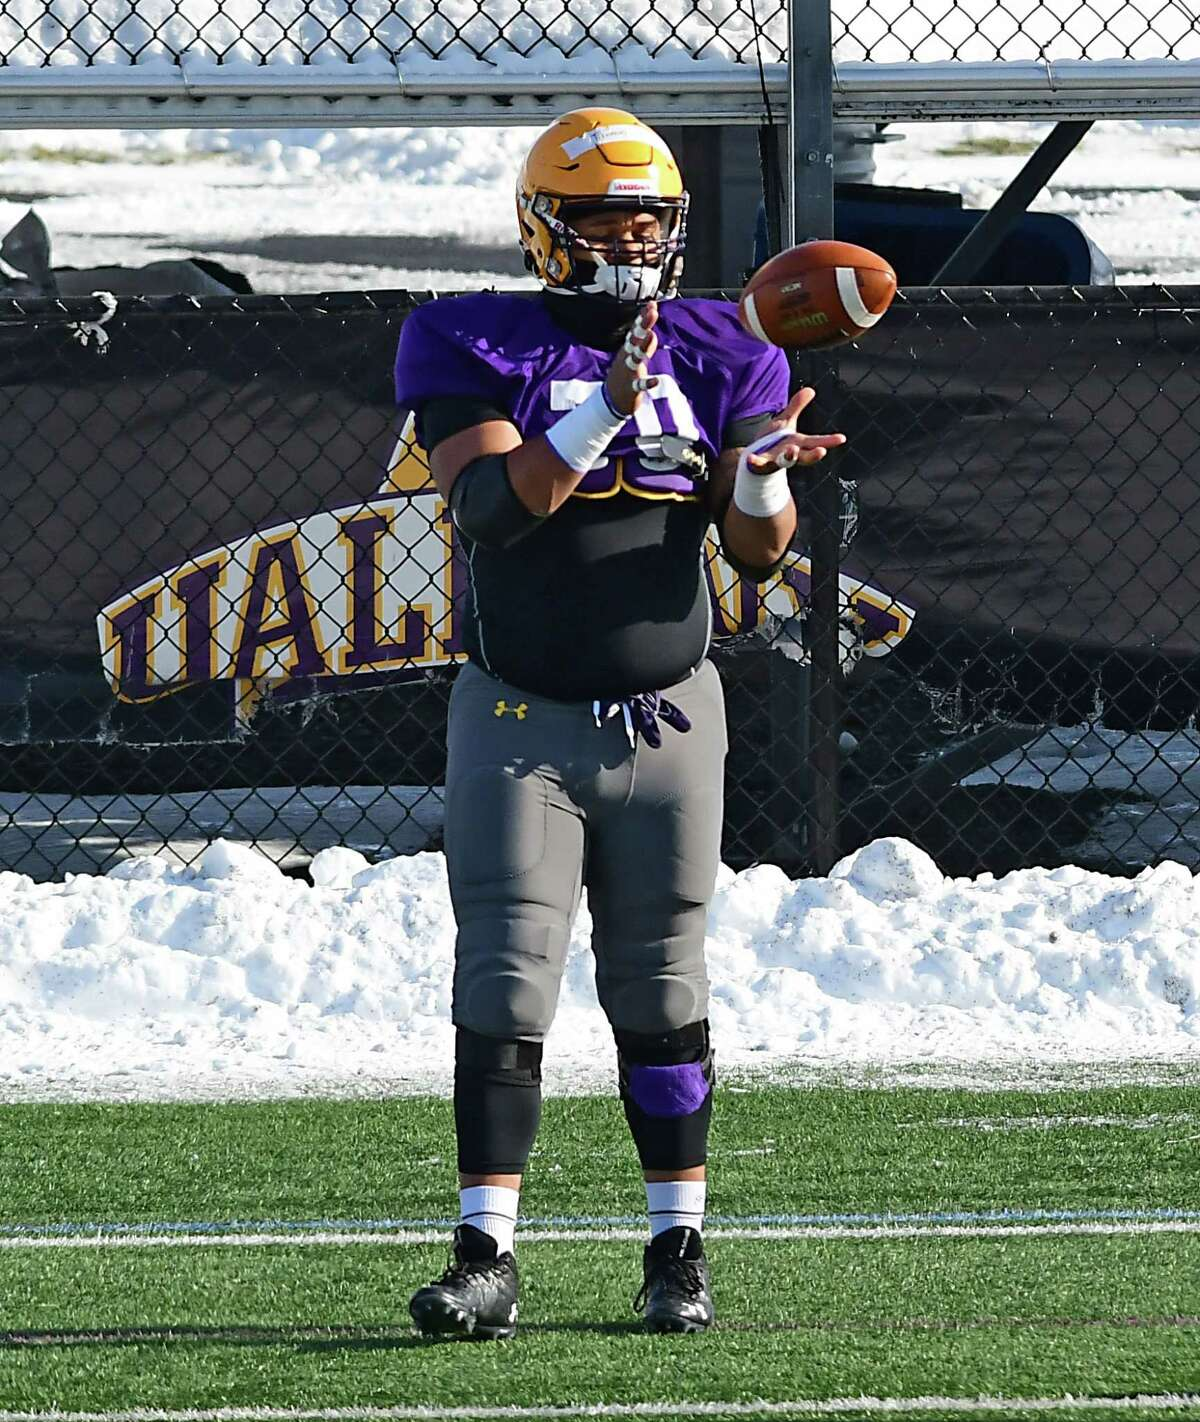 University at Albany offensive lineman Kobe Thomas, shown during a practice last February, said the bye week came at a good time for the Great Danes. (Lori Van Buren/Times Union)